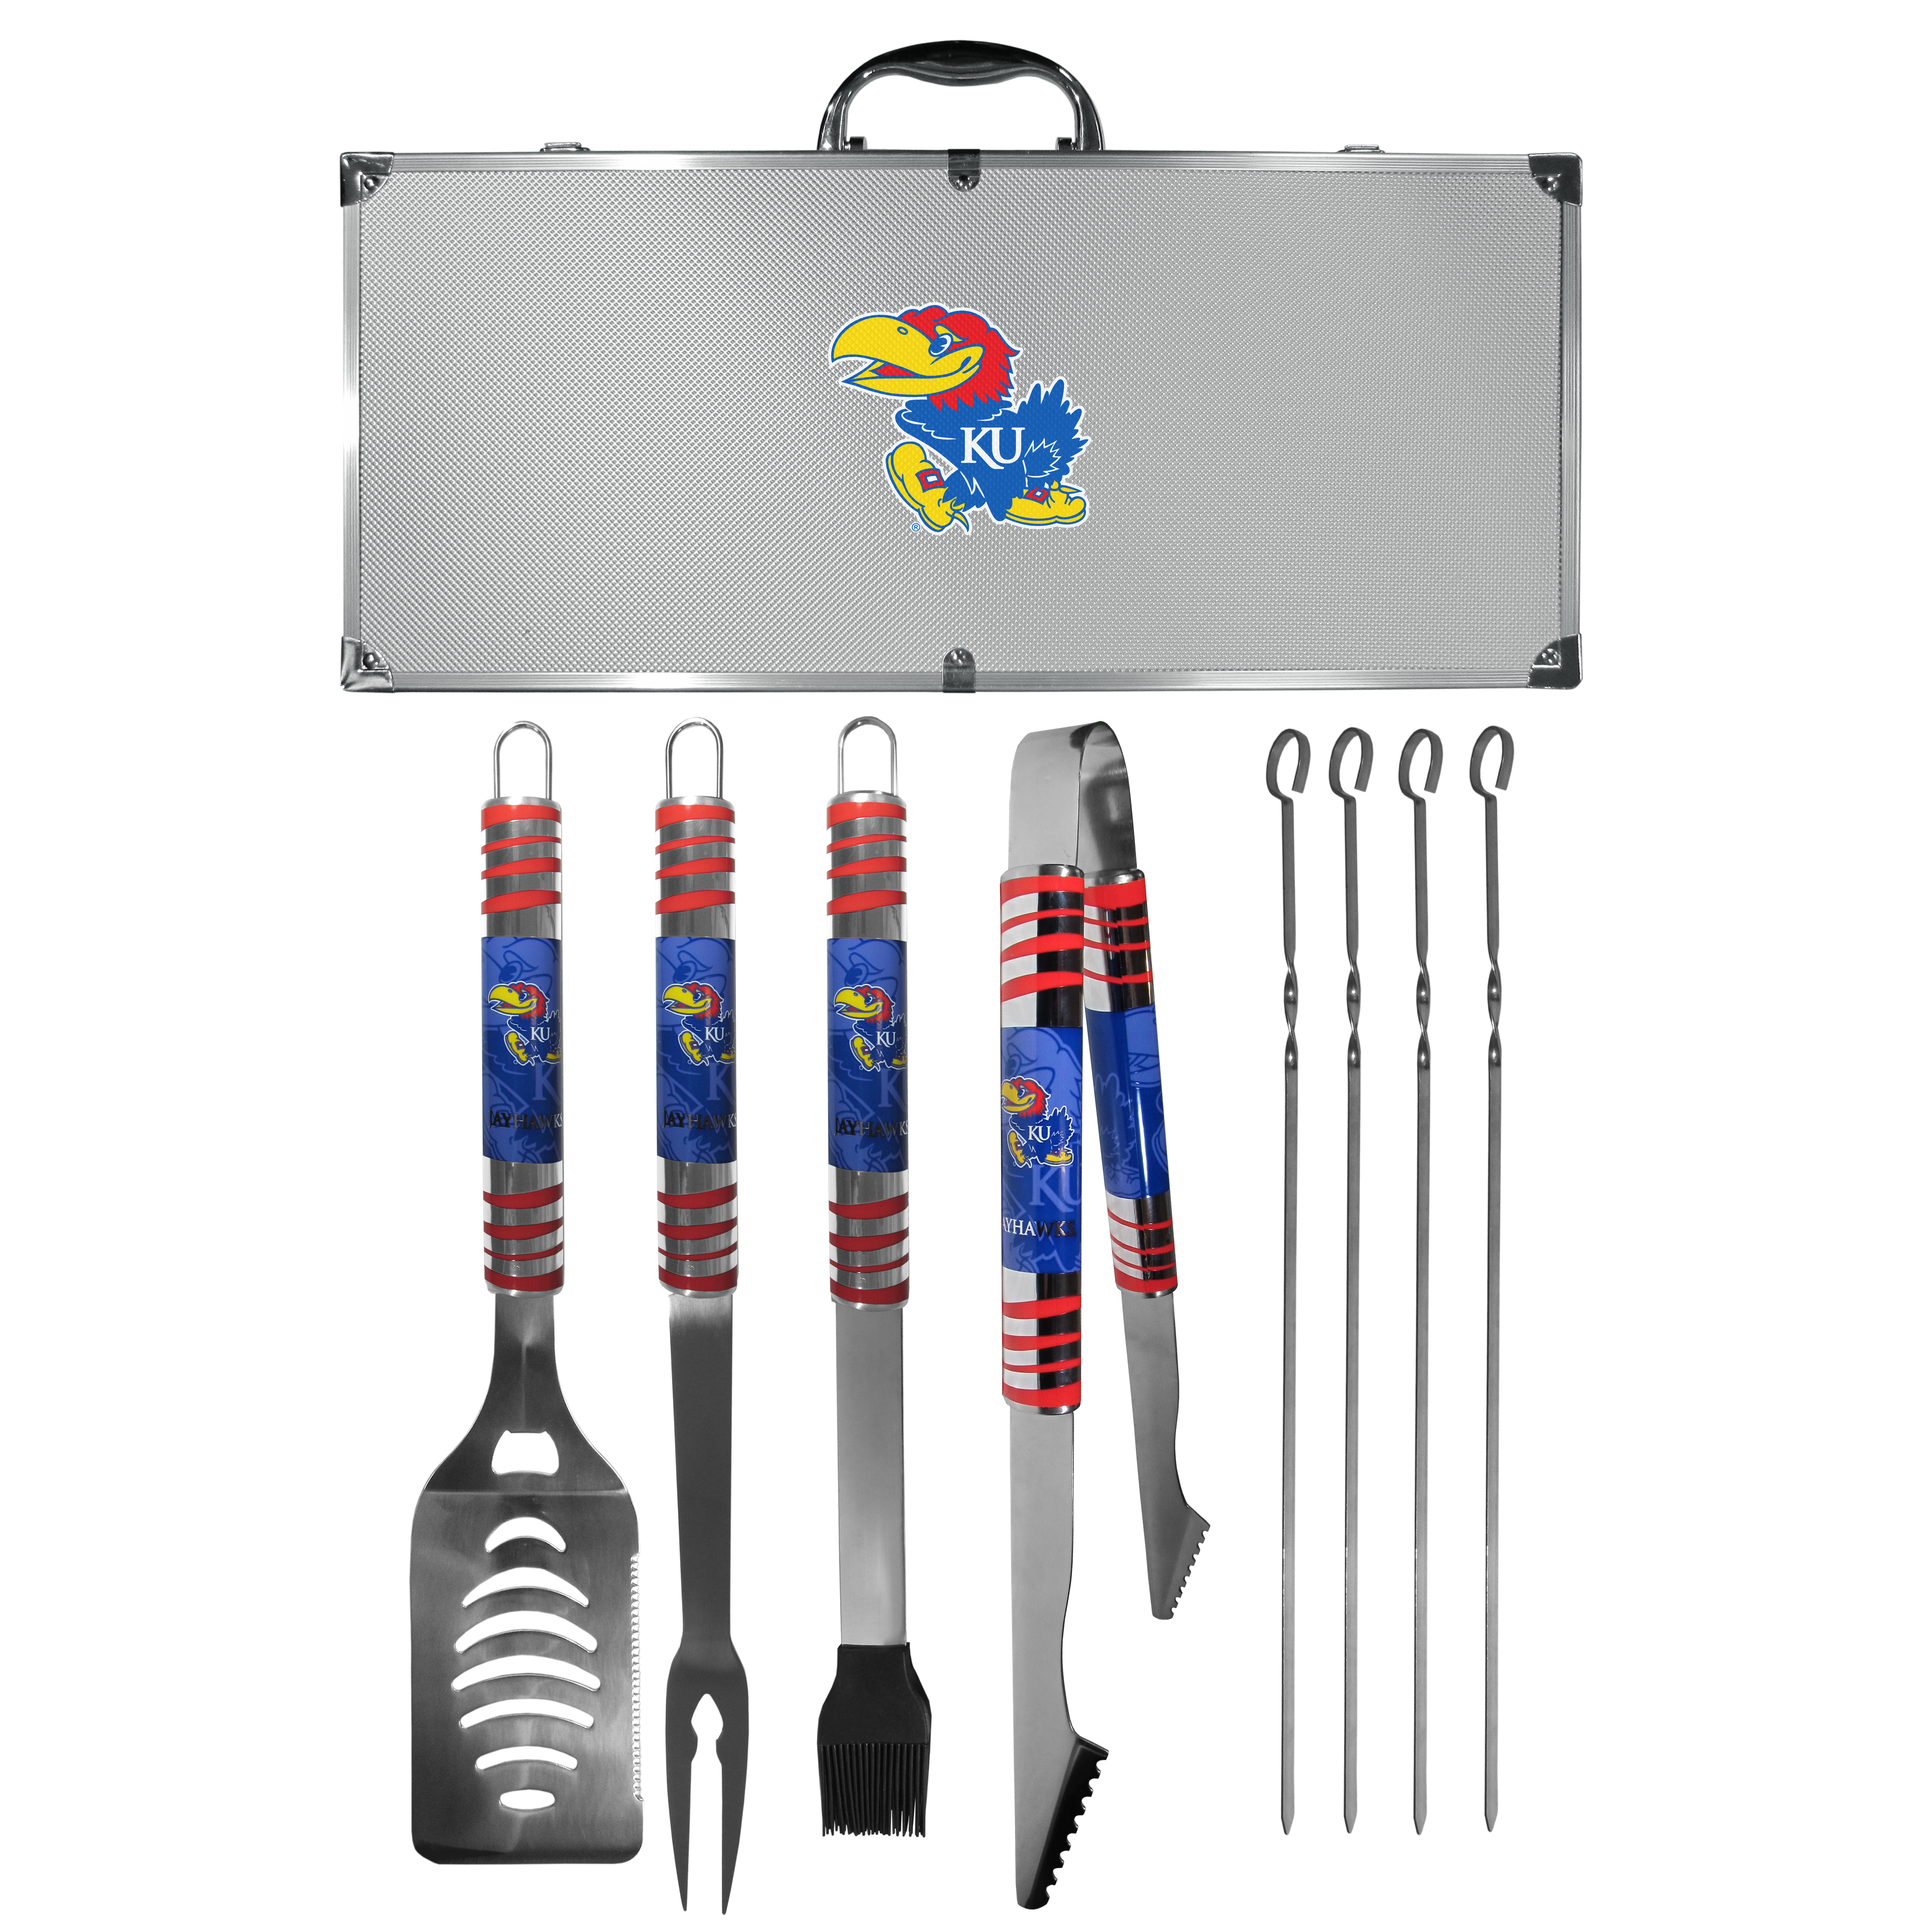 Kansas Jayhawks 8 pc Tailgater BBQ Set - This is the ultimate Kansas Jayhawks tailgate accessory! The high quality, 420 grade stainless steel tools are durable and well-made enough to make even the pickiest grill master smile. This complete grill accessory kit includes; 4 skewers, spatula with bottle opener and serrated knife edge, basting brush, tongs and a fork. The 18 inch metal carrying case is perfect for great outdoor use making grilling an ease while camping, tailgating or while having a game day party on your patio. The tools are 17 inches long and feature vivid team graphics. The metal case features a large team emblem with exceptional detail. This high-end men's gift is sure to be a hit as a present on Father's Day or Christmas.